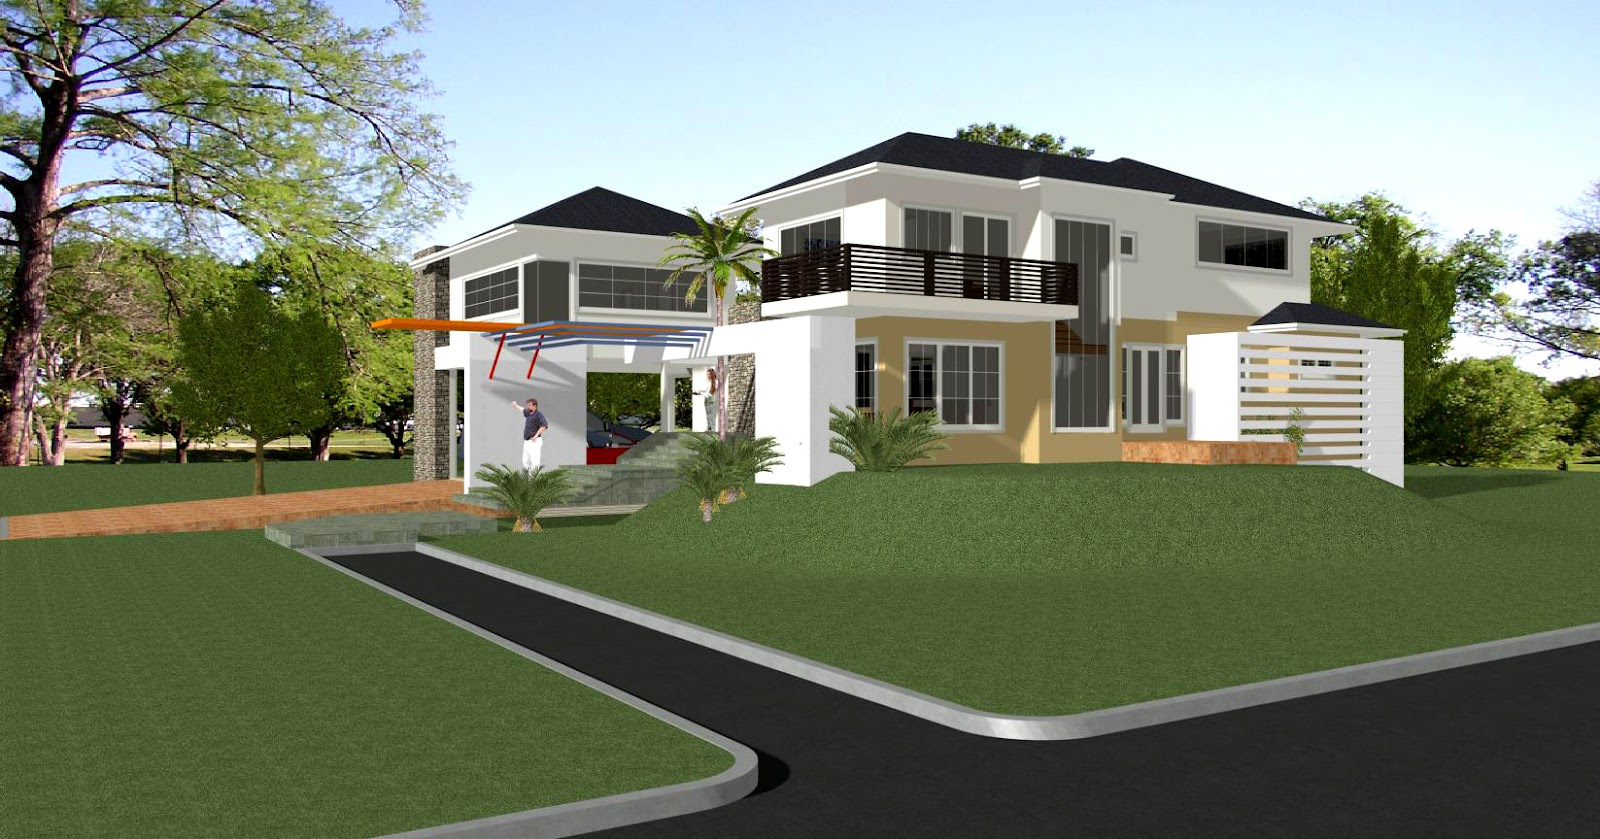 Dream home designs erecre group realty design and for New home construction designs